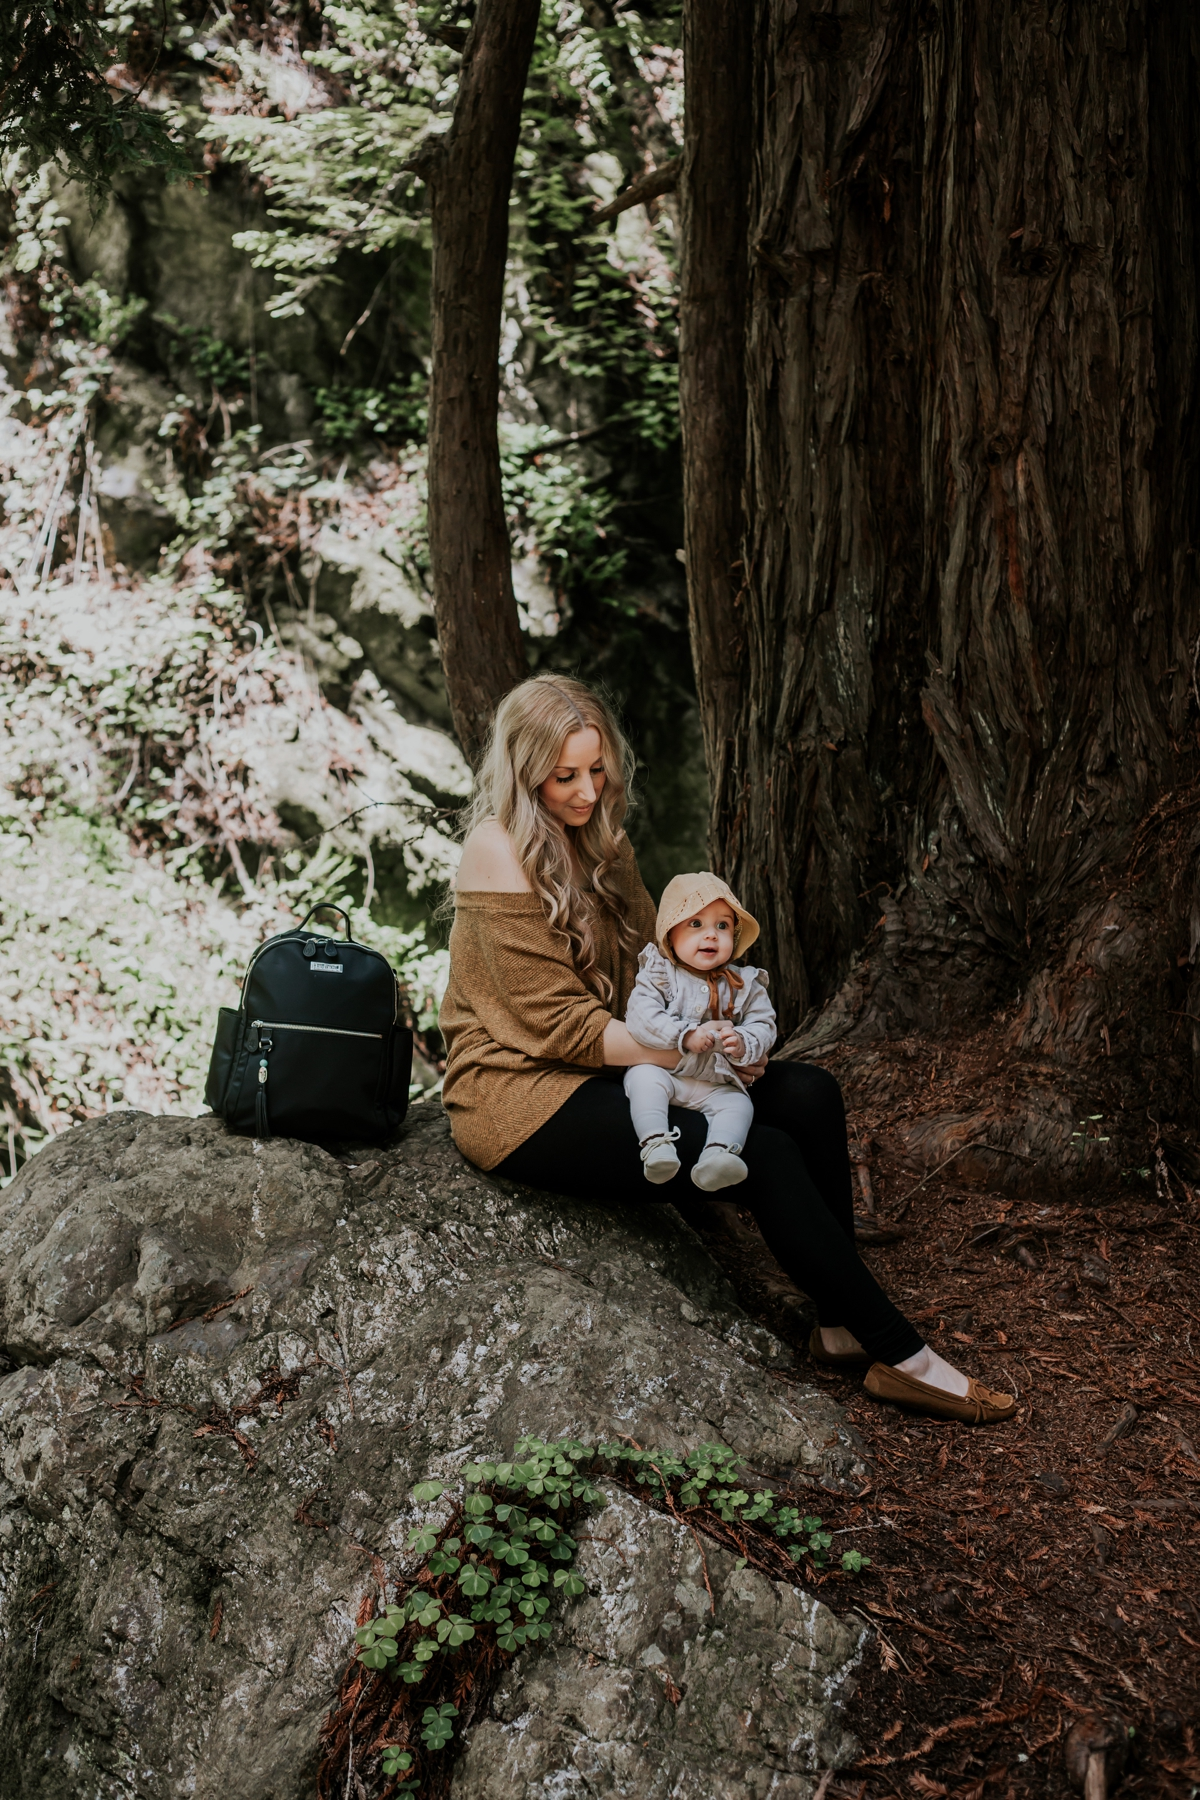 Kandis_Marino_Photography_Lifestyle_Lily_Jade_Diaper_Bag_Influencer_Abassador_Baby_Mom_Blogger_Mommy_Blog_Newborn_Pregnancy_0102.jpg